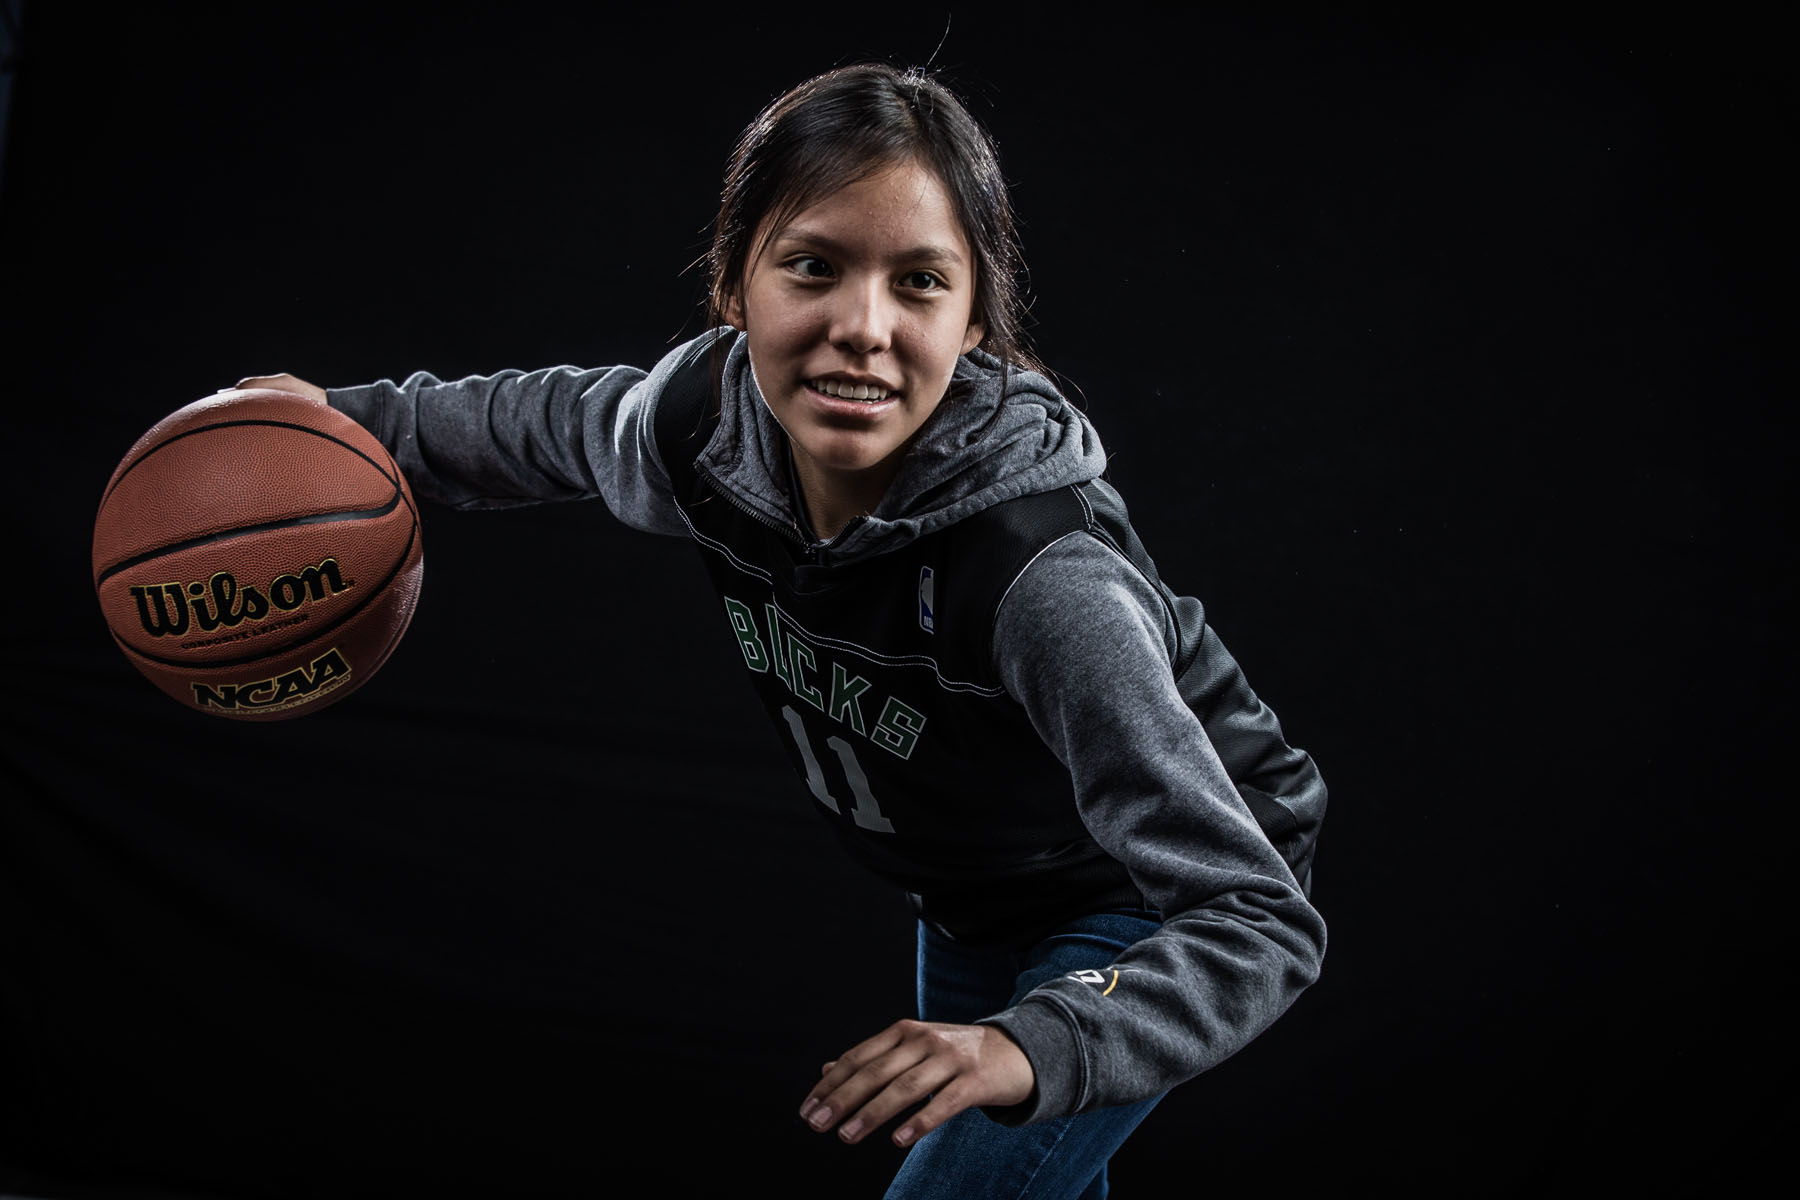 Prime Time Athletics Flagstaff basketball team photo on February 22, 2020. Photo by Sean Openshaw Photography.